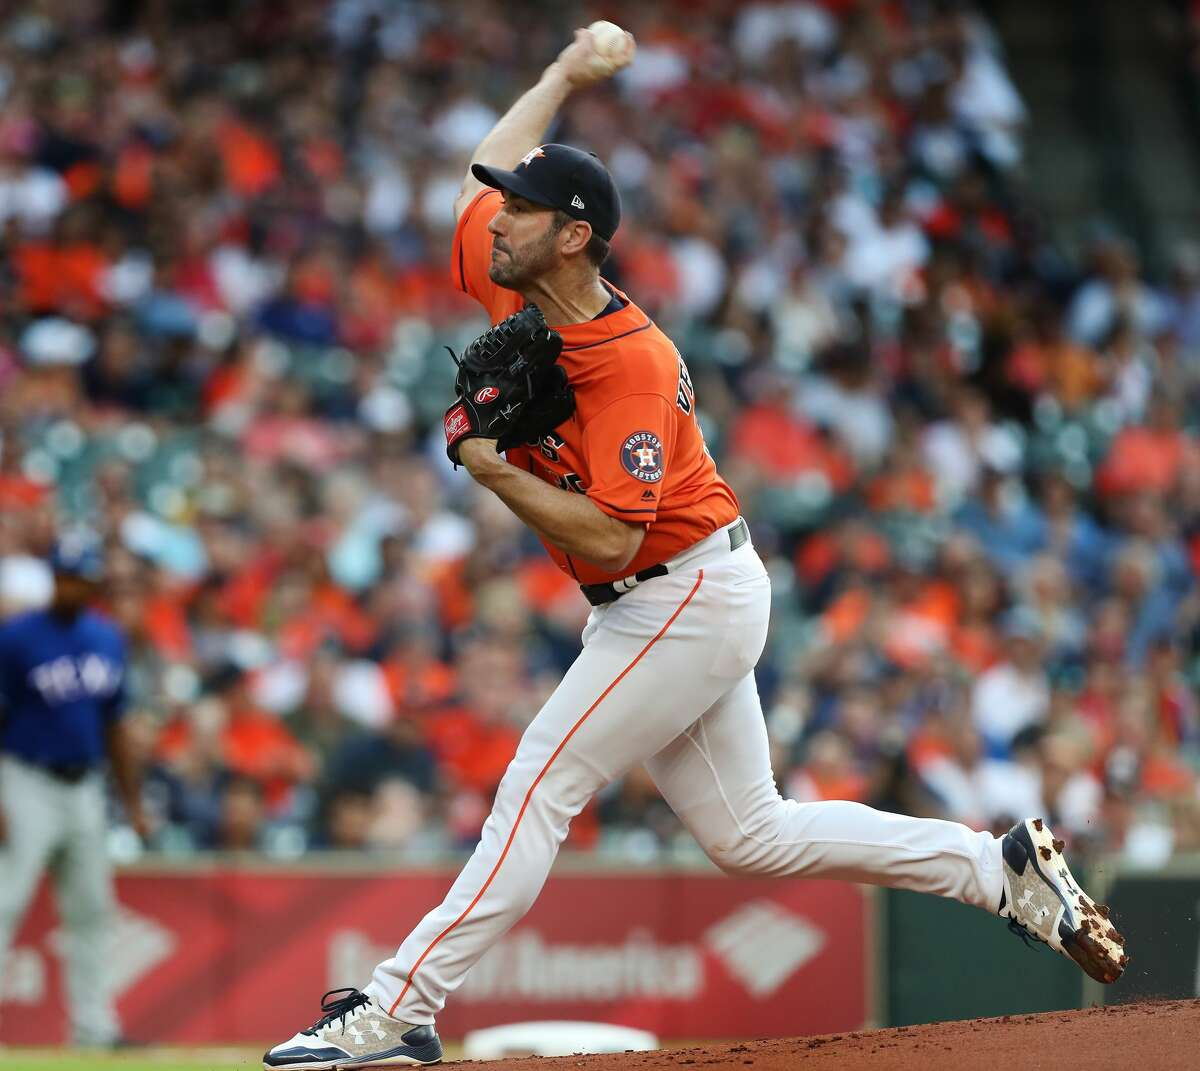 Houston Astros starting pitcher Justin Verlander (35) pitches during the 1st inning at Minute Maid Park Friday, May 11, 2018, in Houston. ( Steve Gonzales / Houston Chronicle )